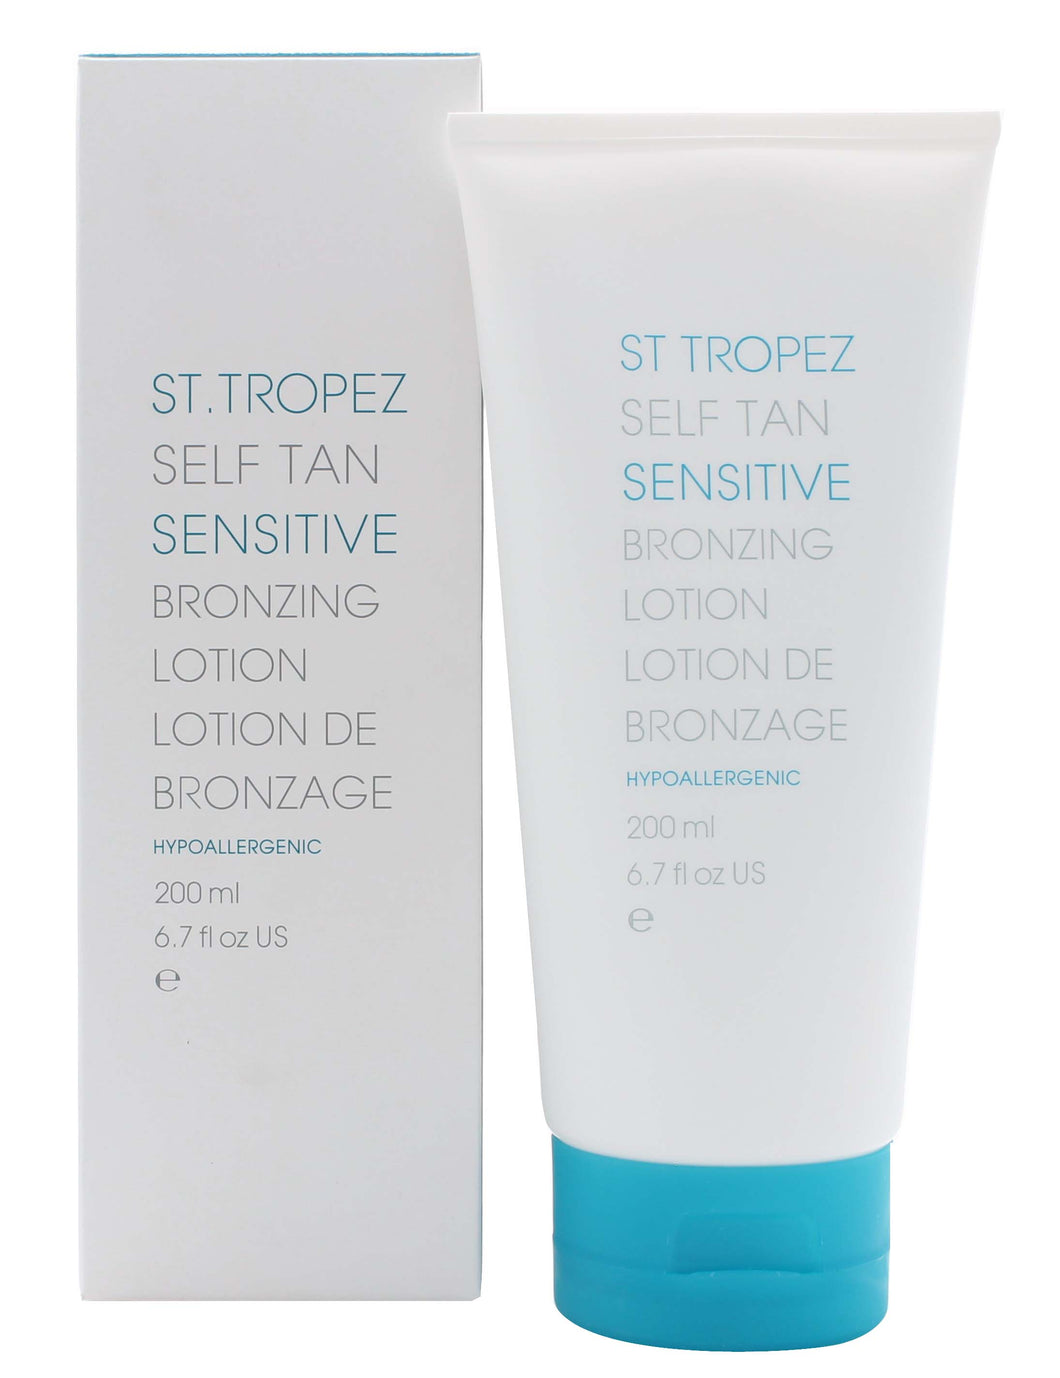 St Tropez Sensitive Self Tan Bronzing Lotion Body 200ml